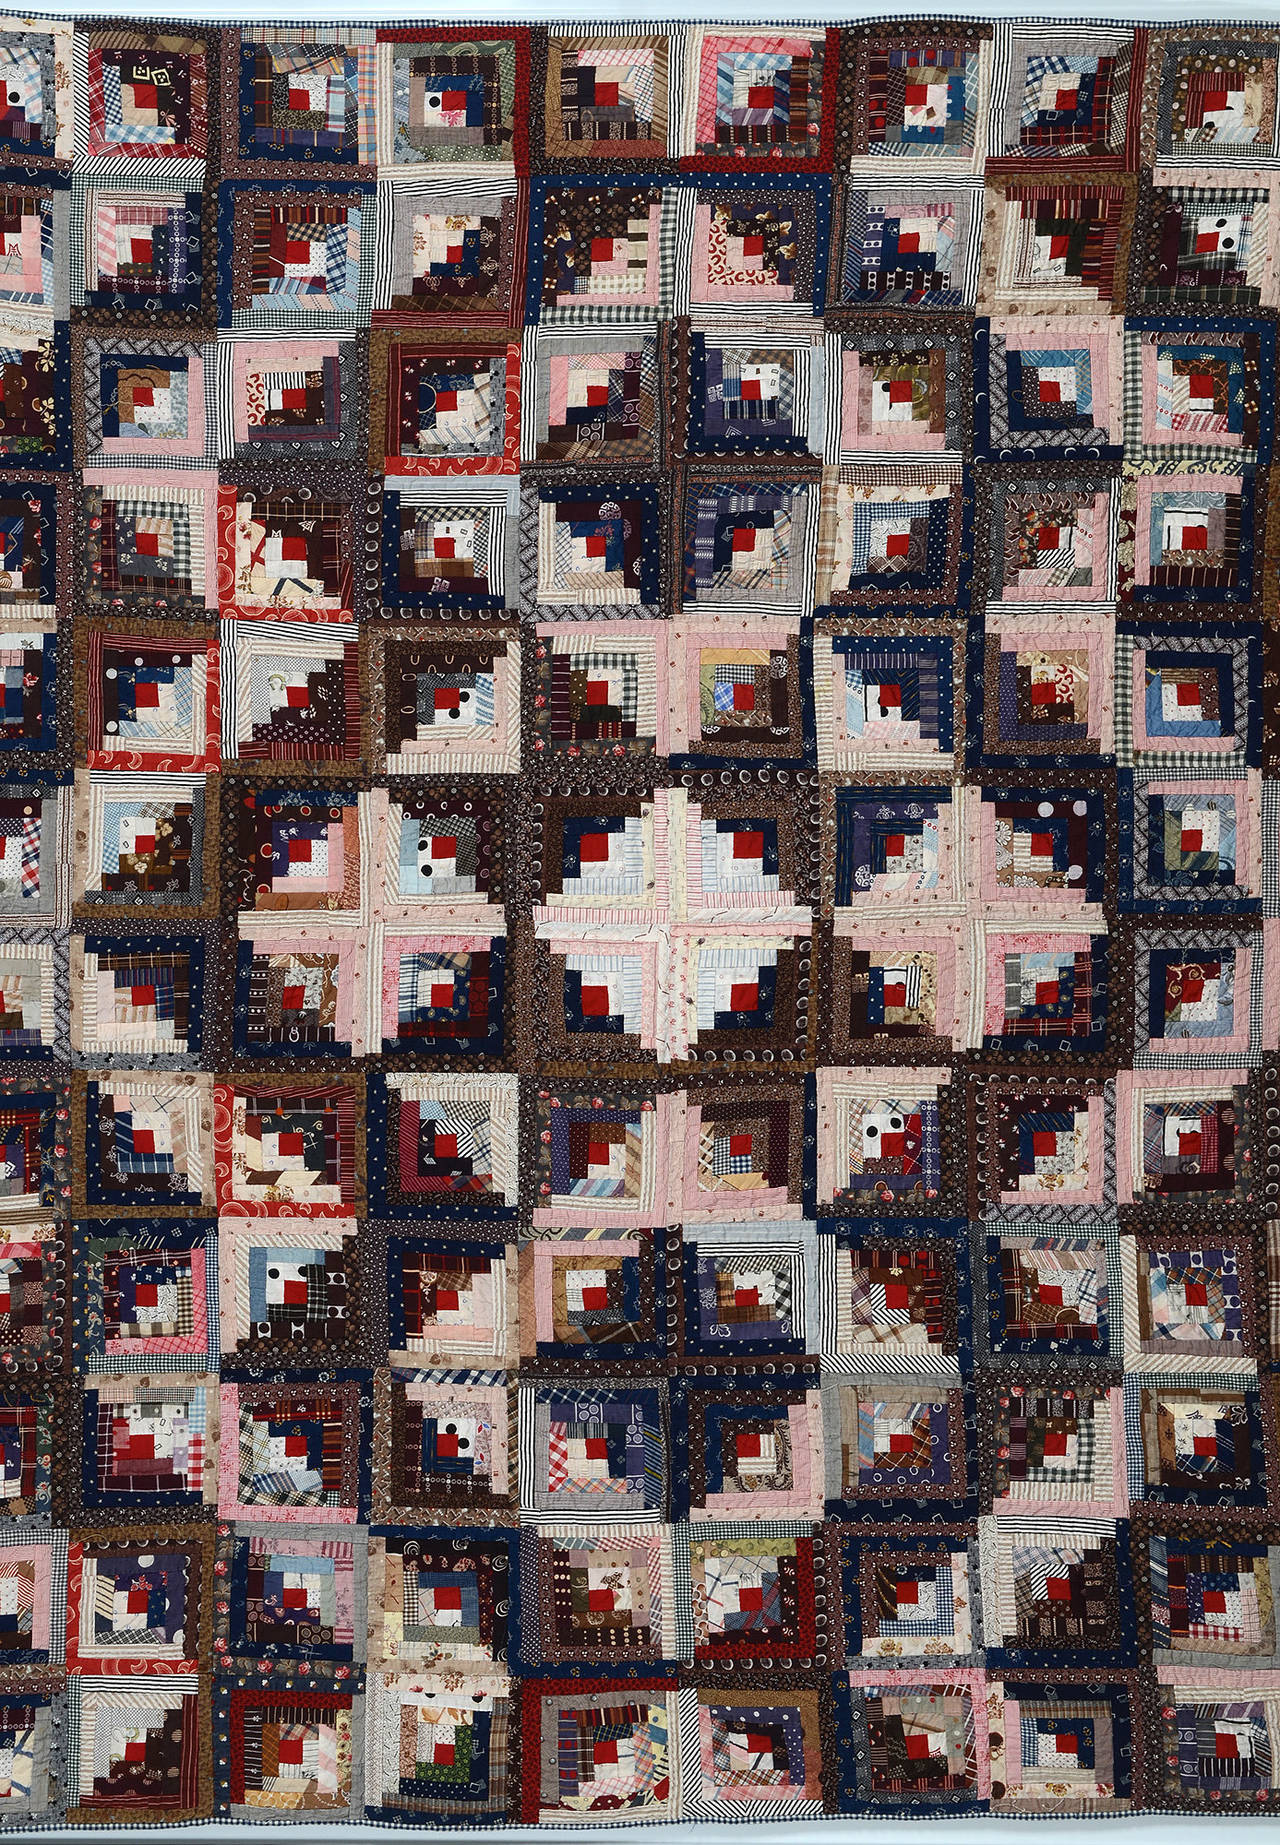 This unusual log cabin quilt is actually three different patterns. There is a streak of lightning surrounding the star center as well as a light and dark pattern above and below the star. It is extraordinary to realize that the same log cabin block